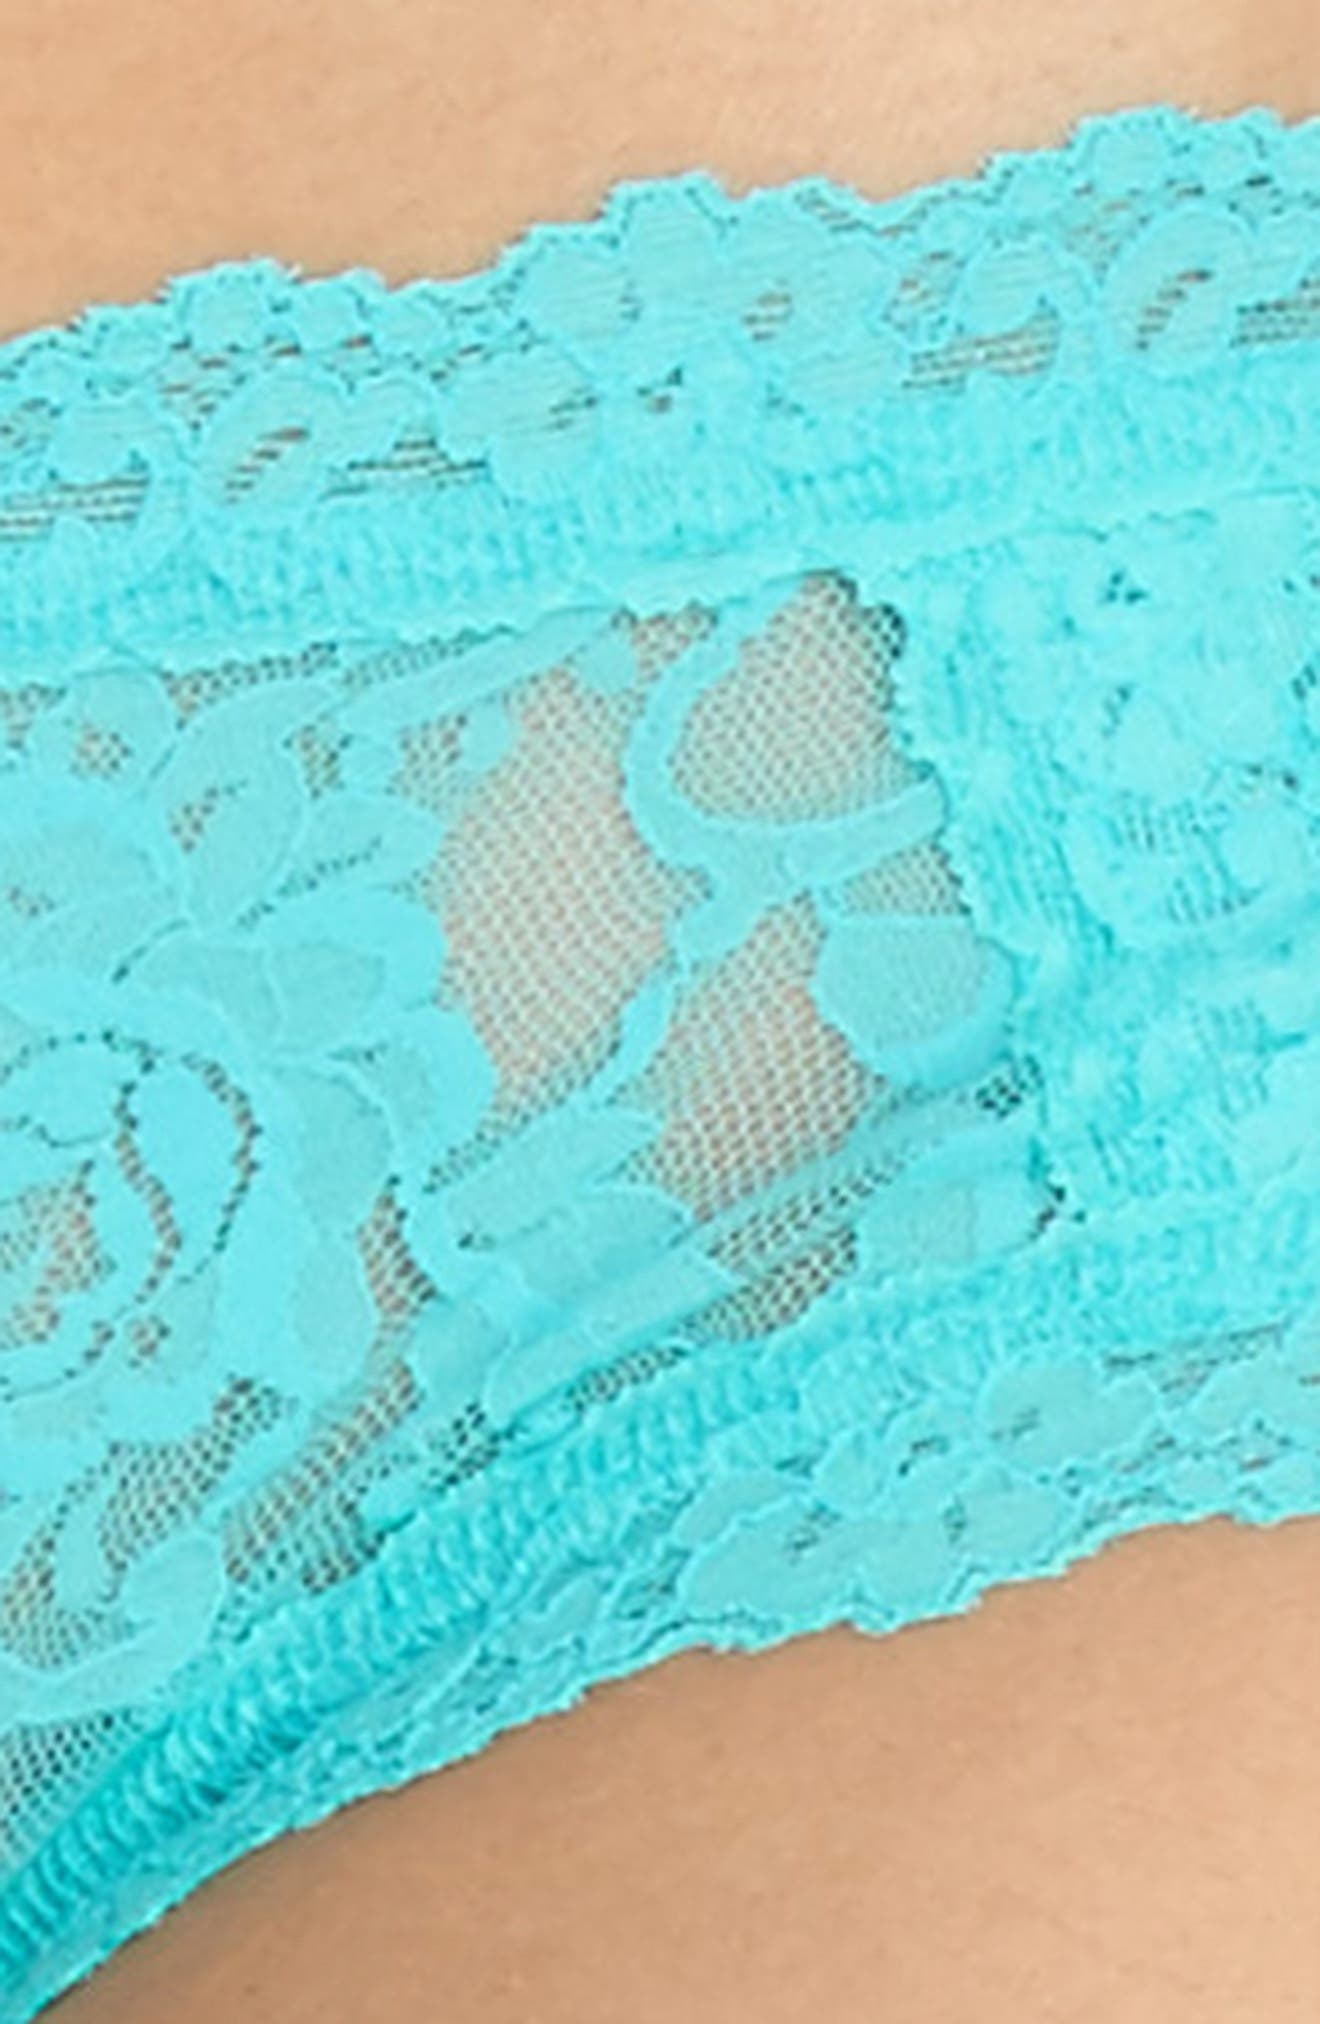 Floral Stretch Lace Girlkini,                             Alternate thumbnail 12, color,